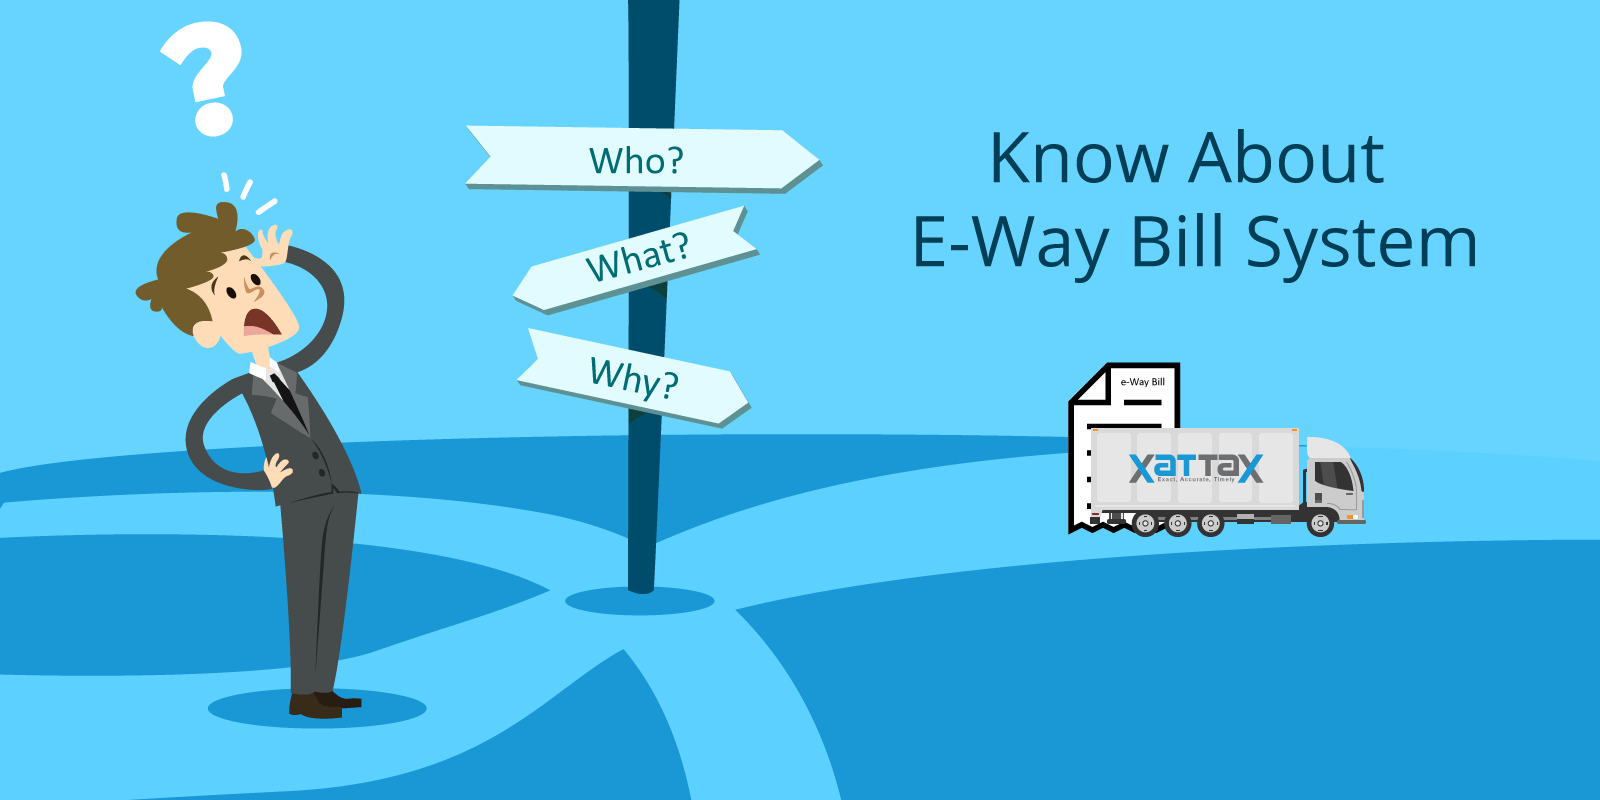 know about eway bill